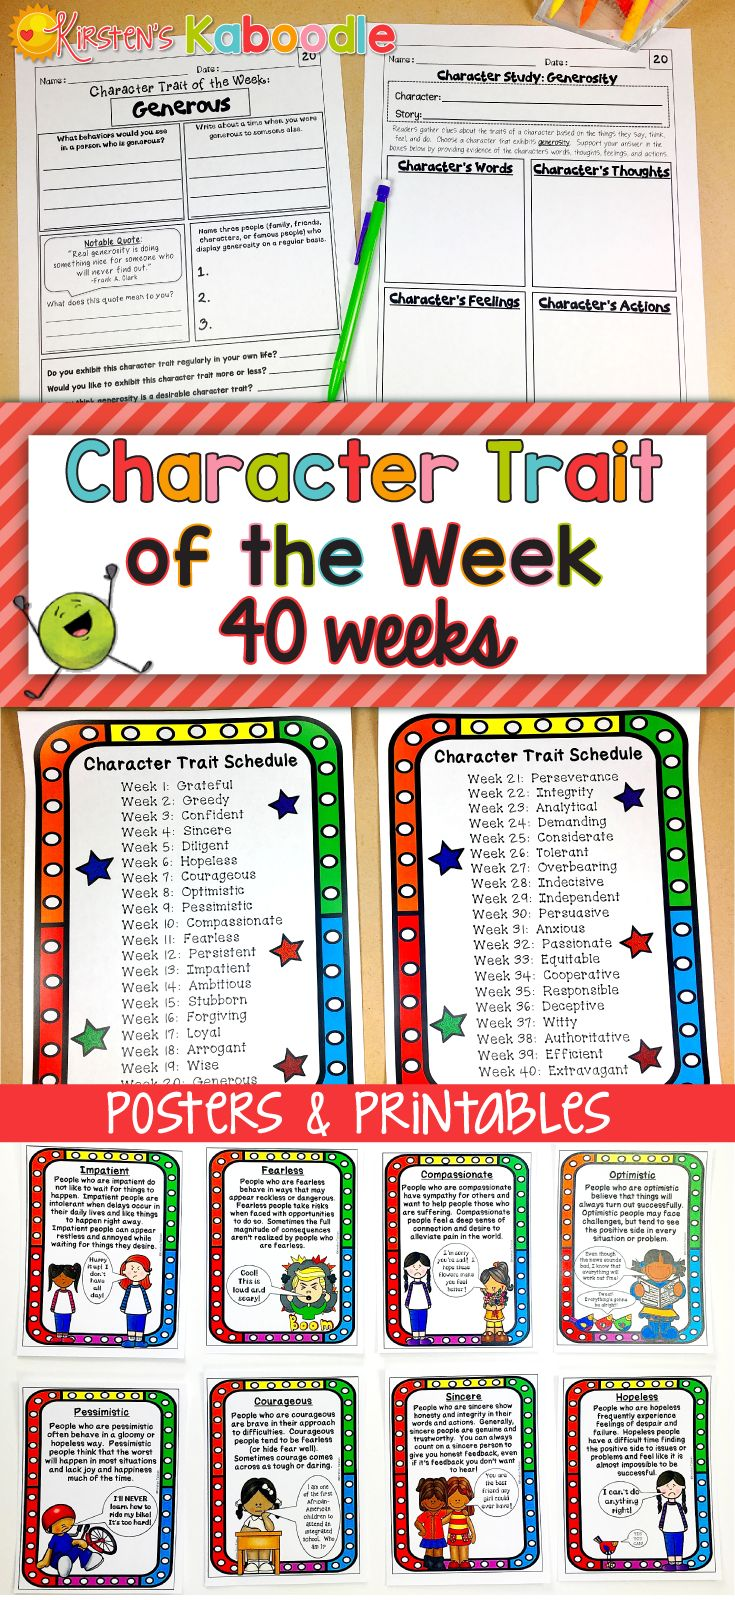 Are you a teacher looking for engaging ways to help your students understand character traits?  These character traits posters and printables for each week of the year will help your students make connections to their lives and to literature. All 40 posters feature different character traits and come with corresponding no prep printables. Teacher tips and ideas for use are also included.